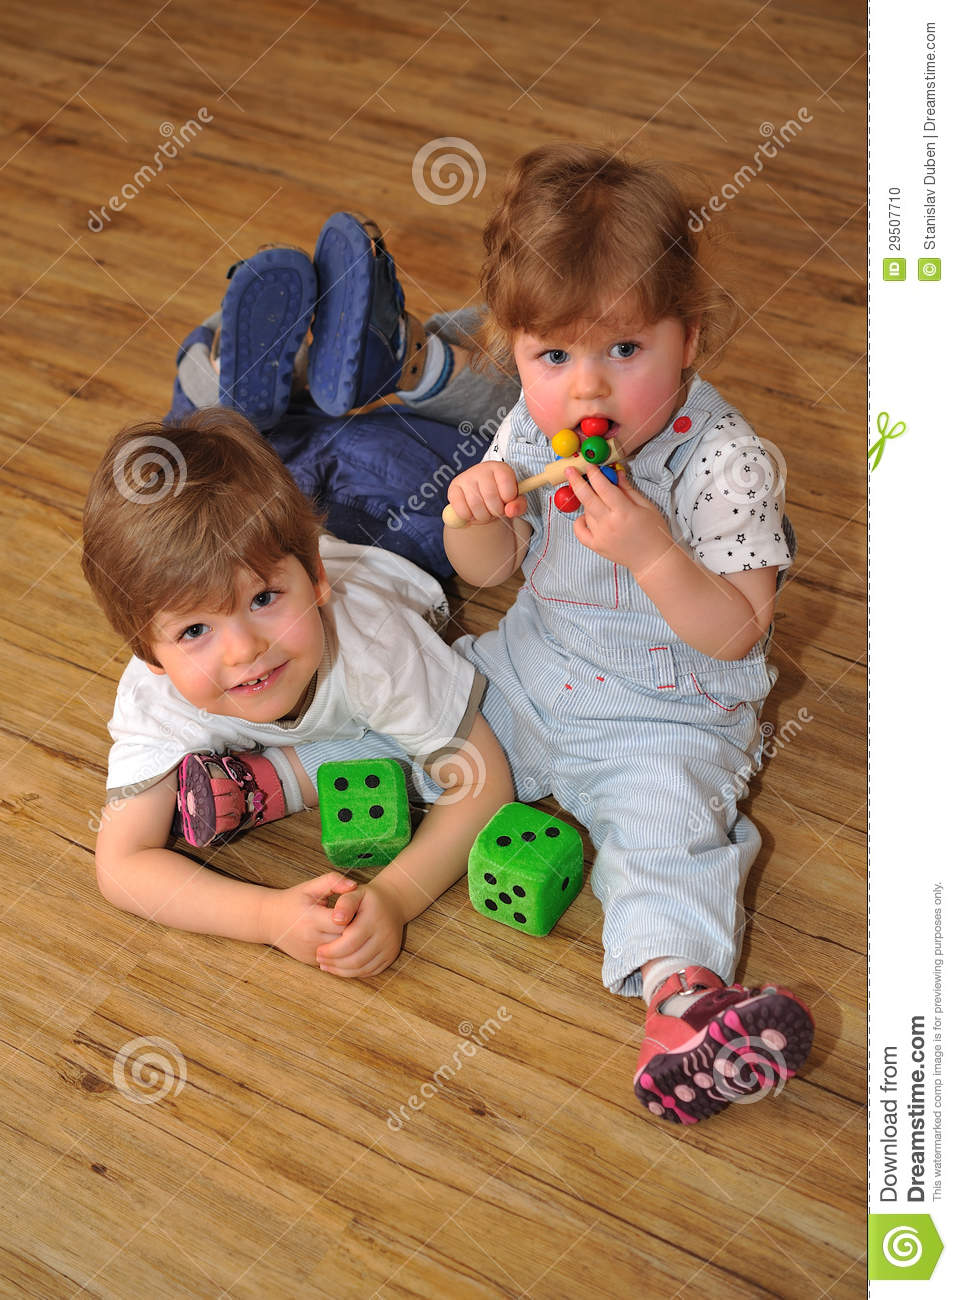 Toys For Siblings : Happy brother and sister on wooden floor with toys